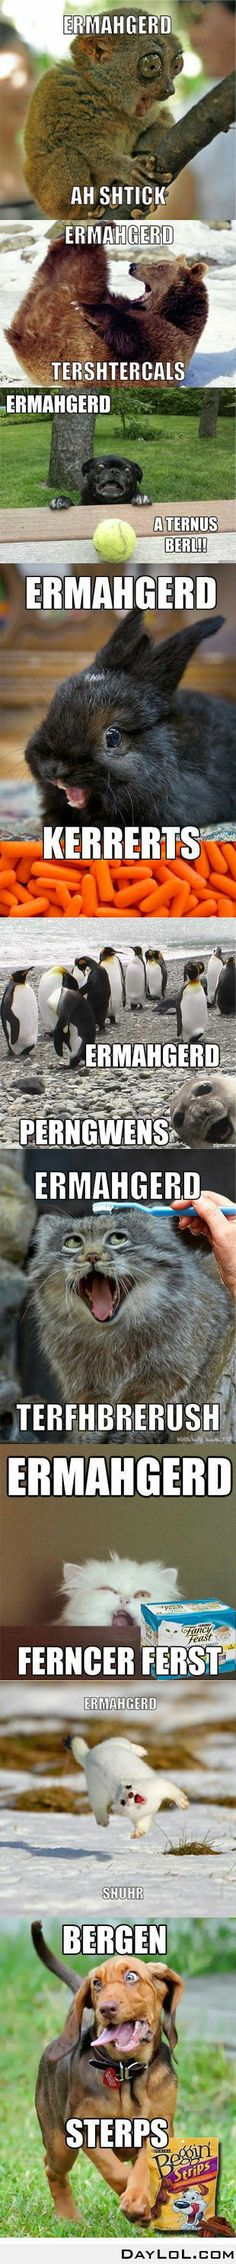 cats, ermagerd, dogs, silly animals, giggl